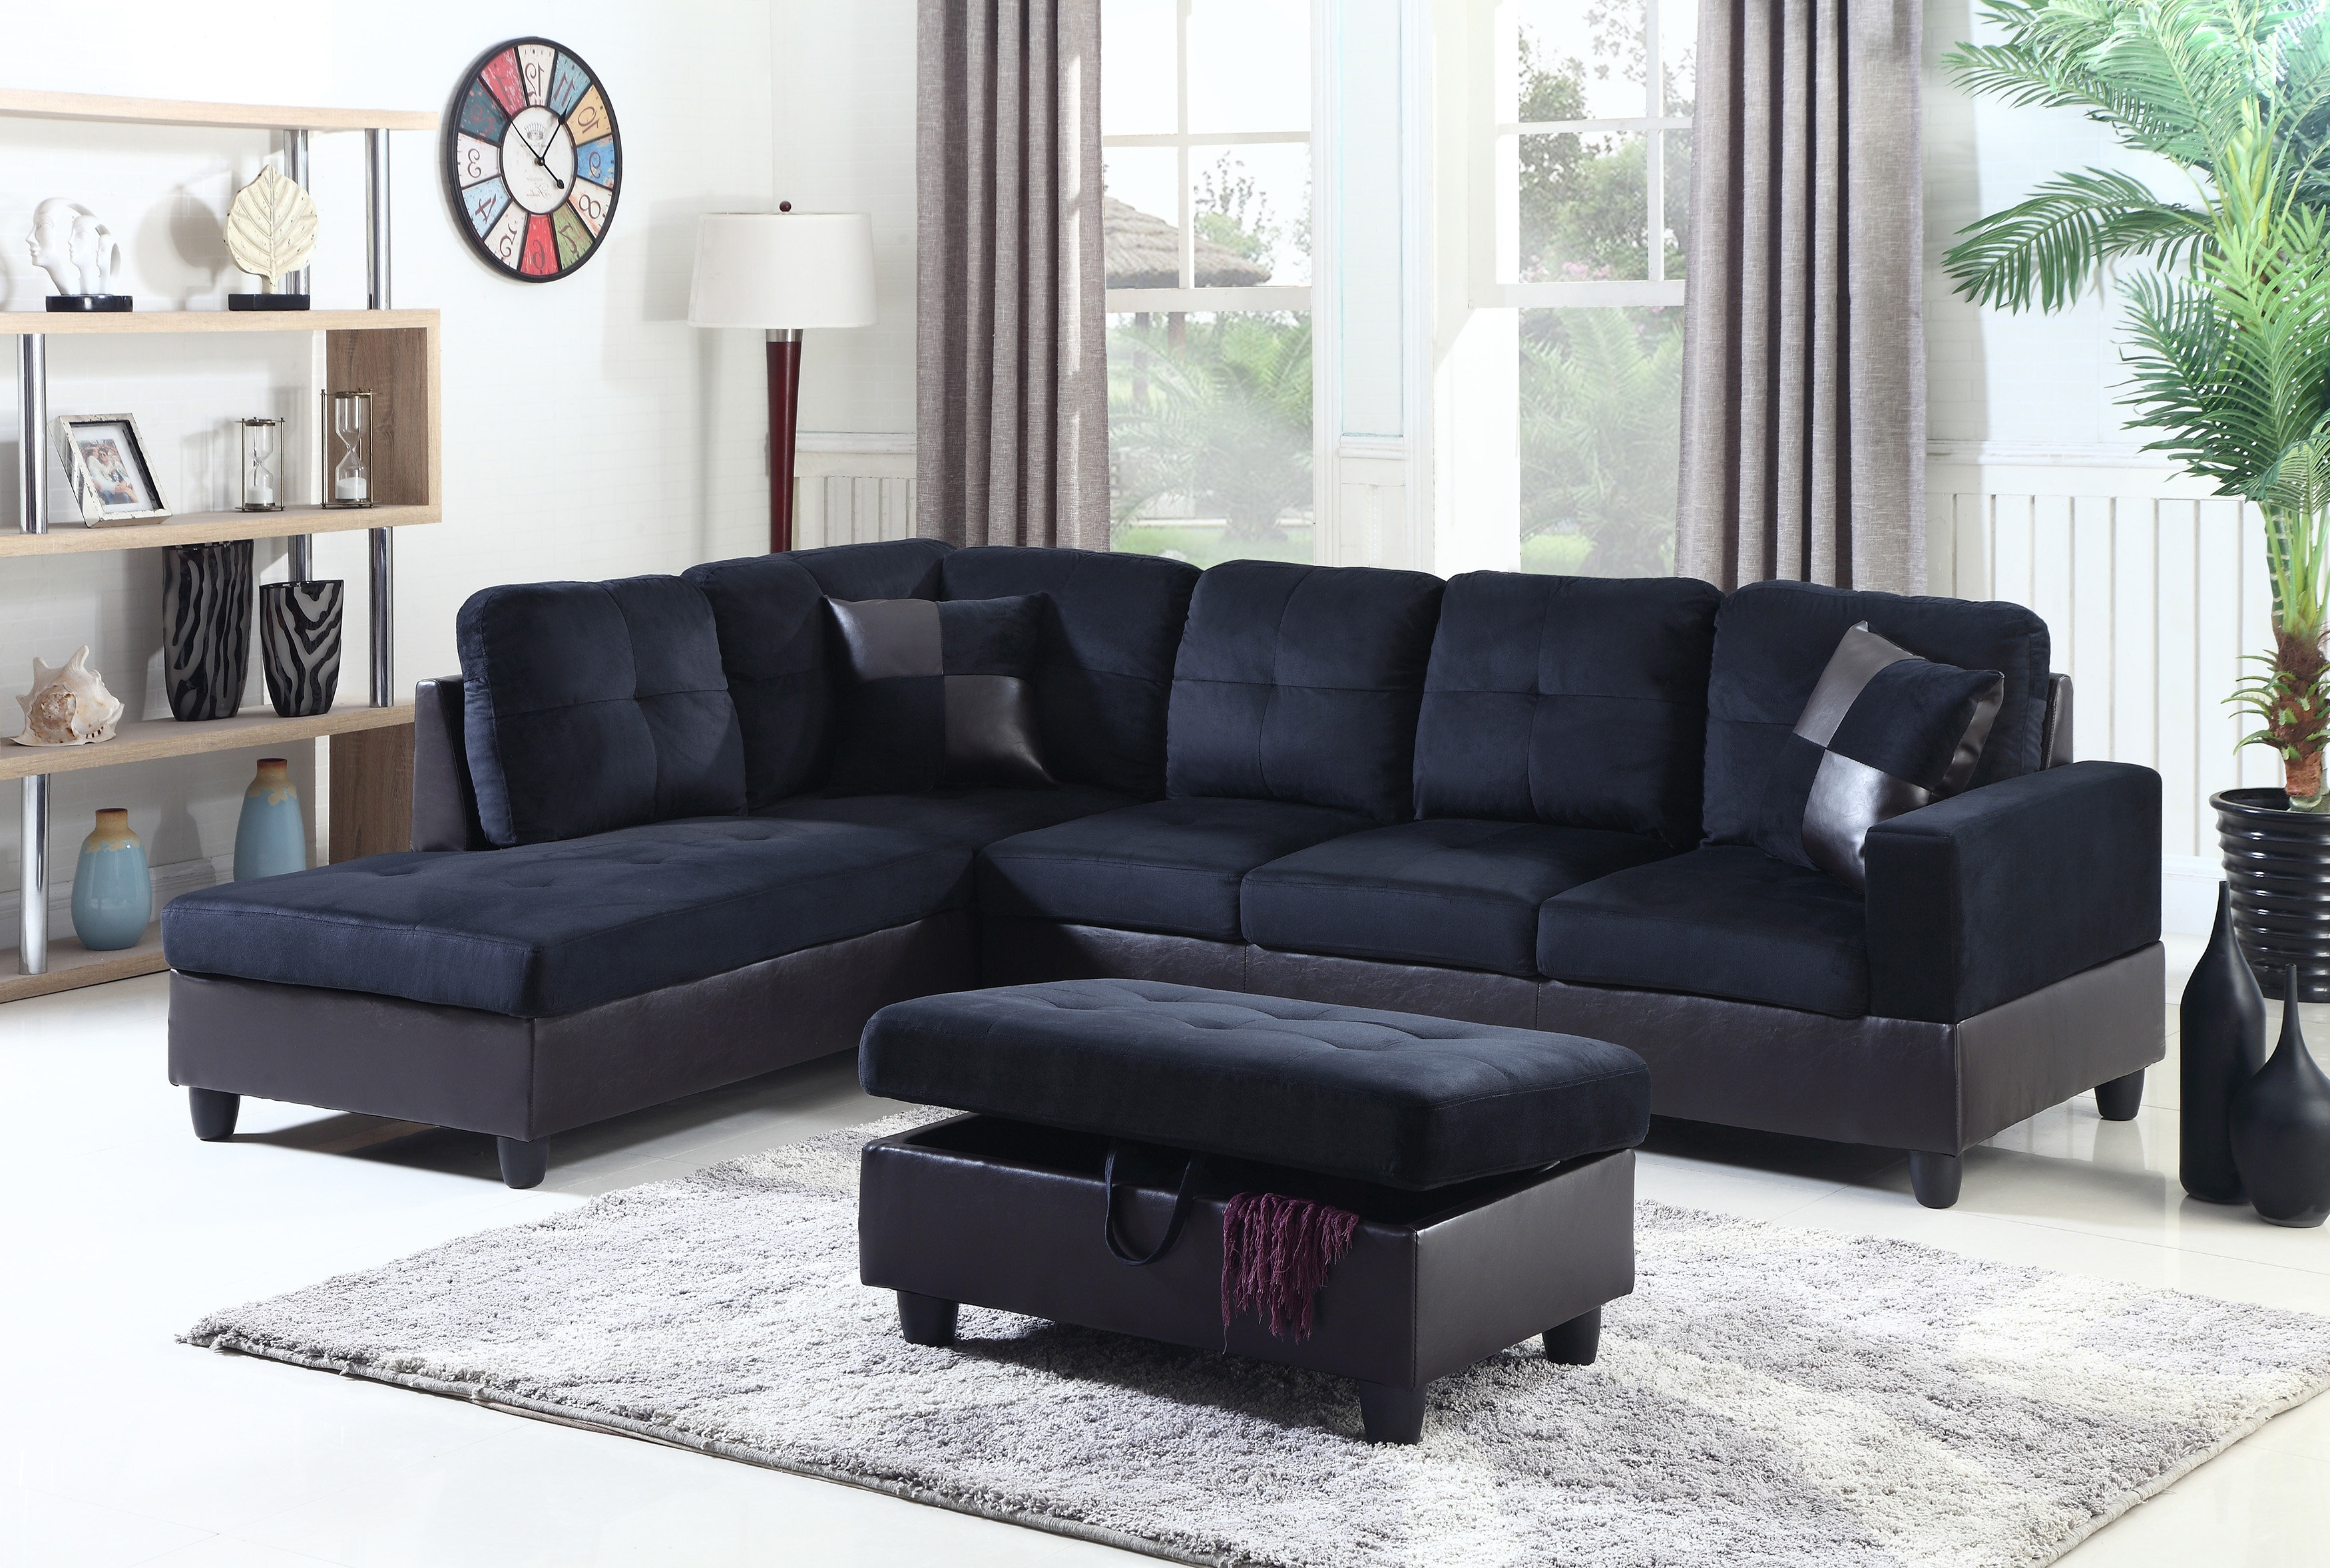 Beverly Fine Furniture Aiden Sectional | Wayfair Inside Aidan 4 Piece Sectionals (Image 12 of 25)